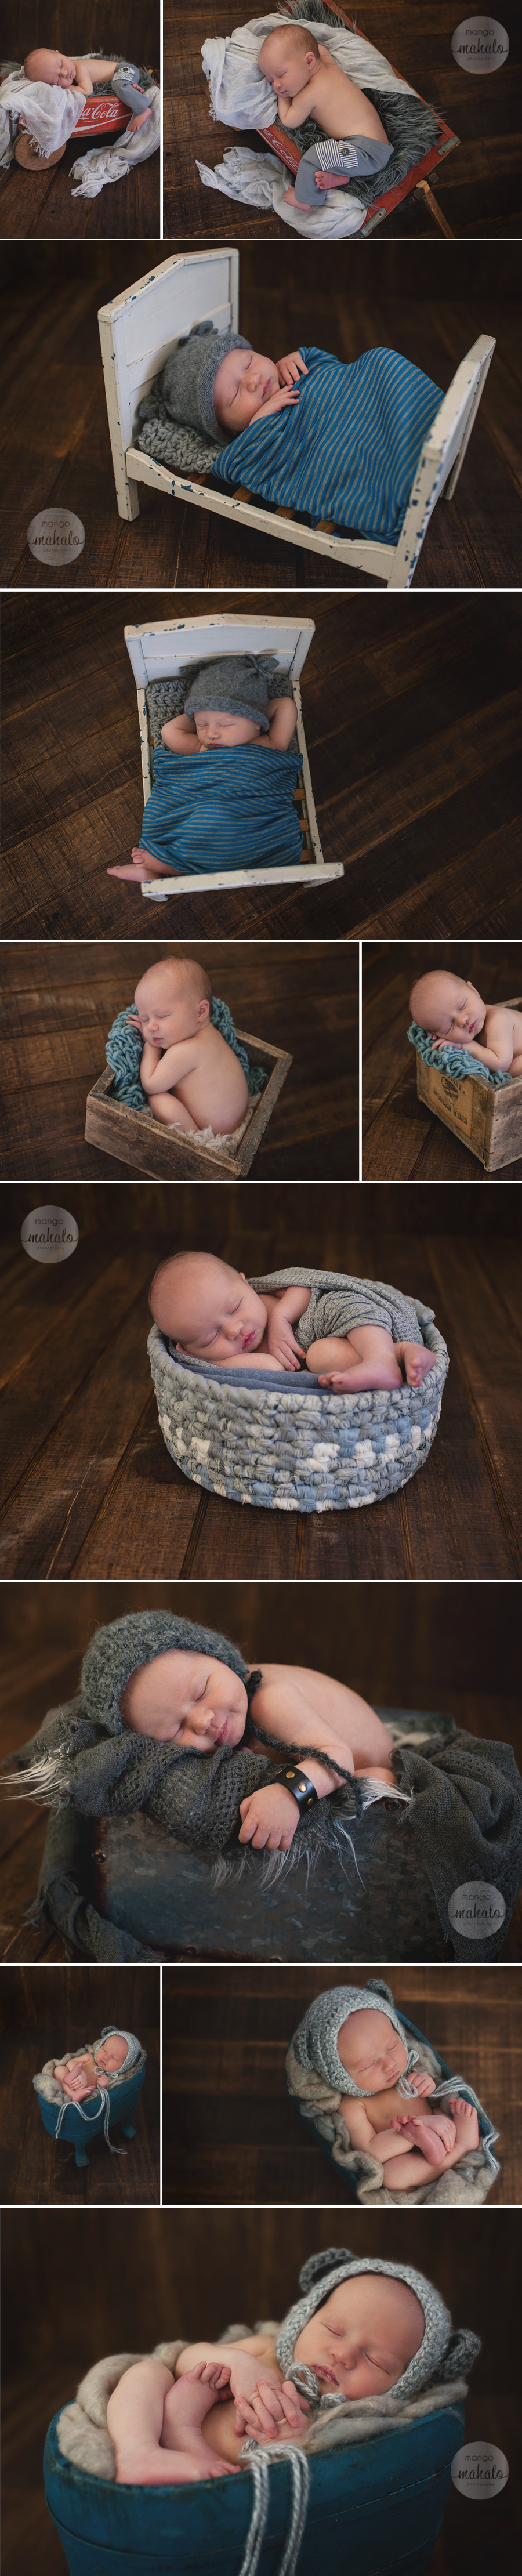 Southern California newborn photography by Mango Mahalo Photography by Michelle Anderson